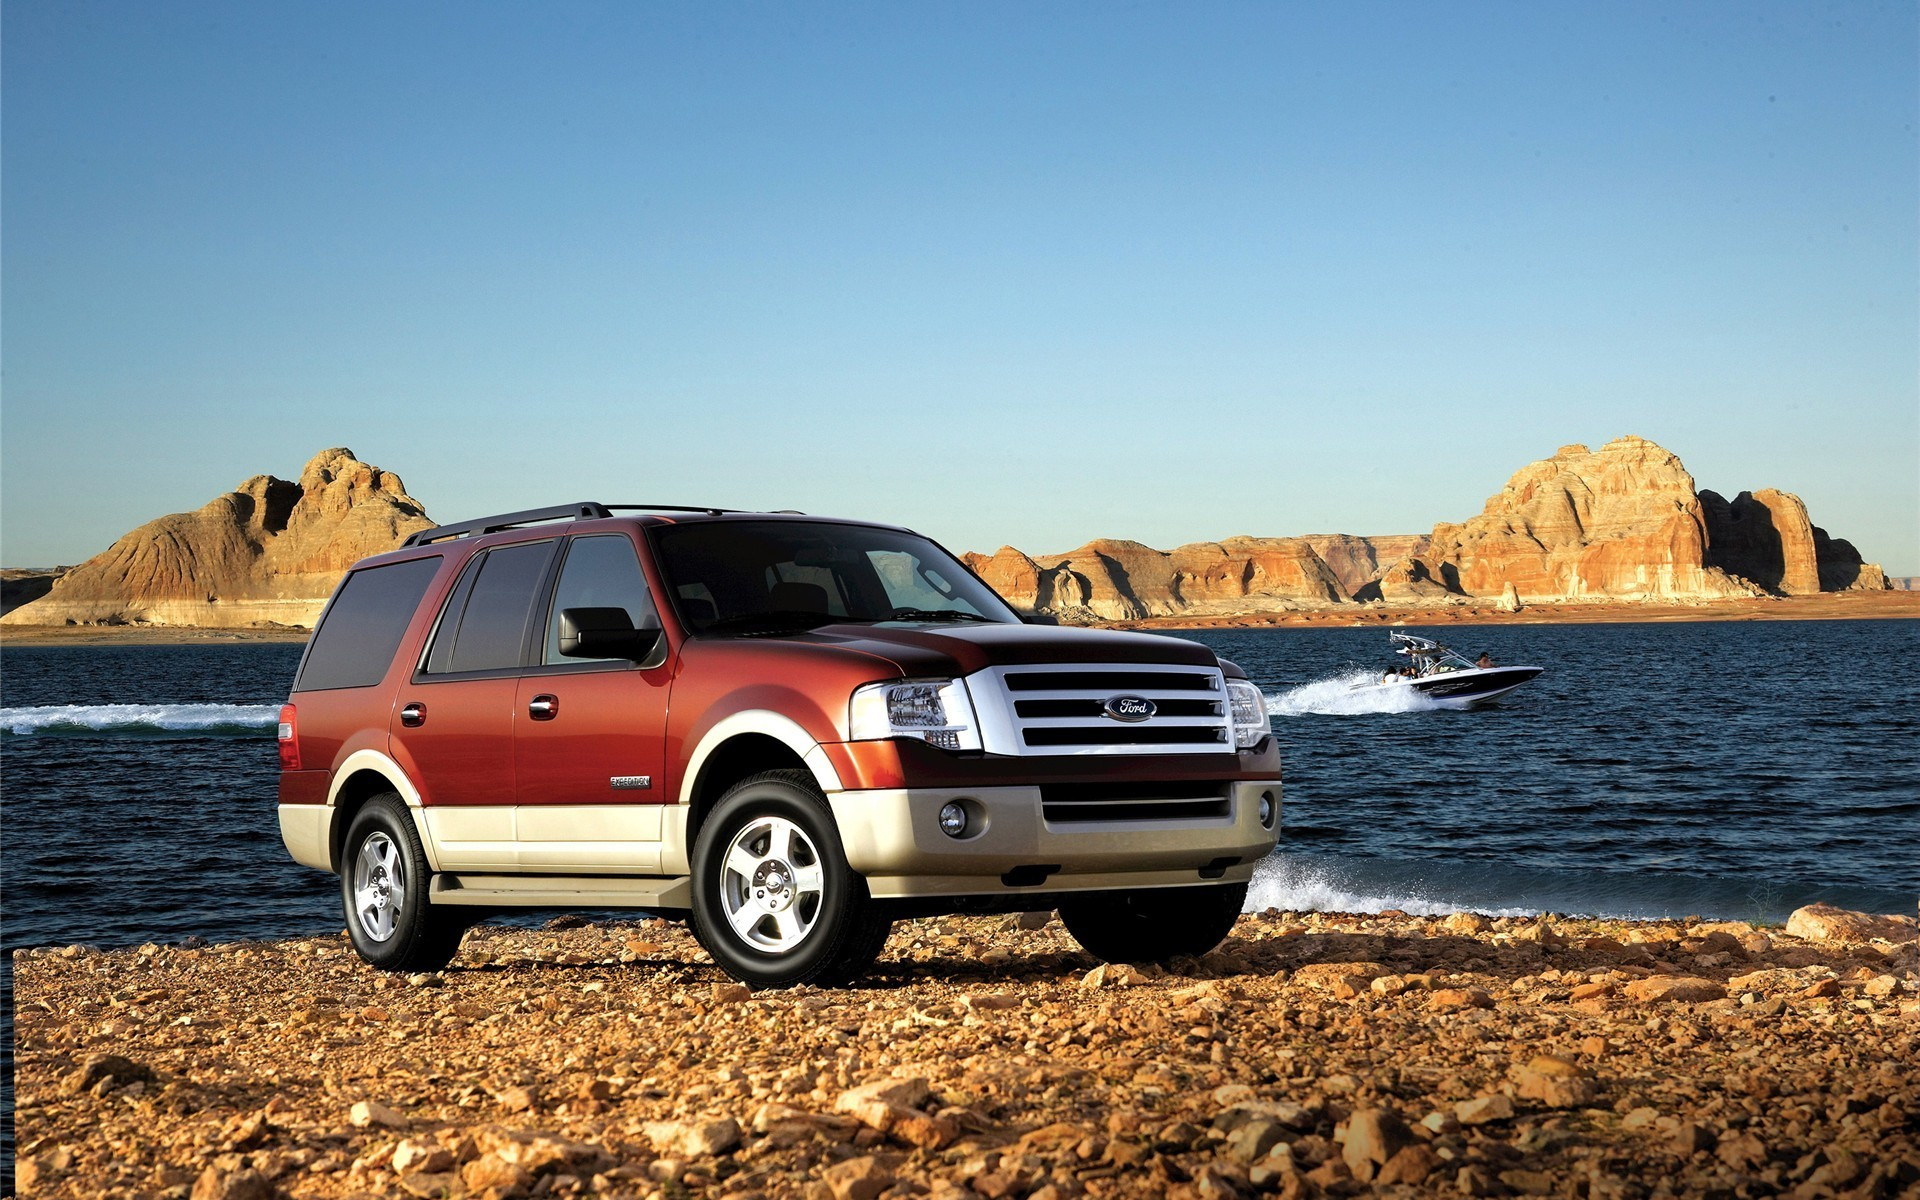 Ford Ford Expedition HD Wallpaper